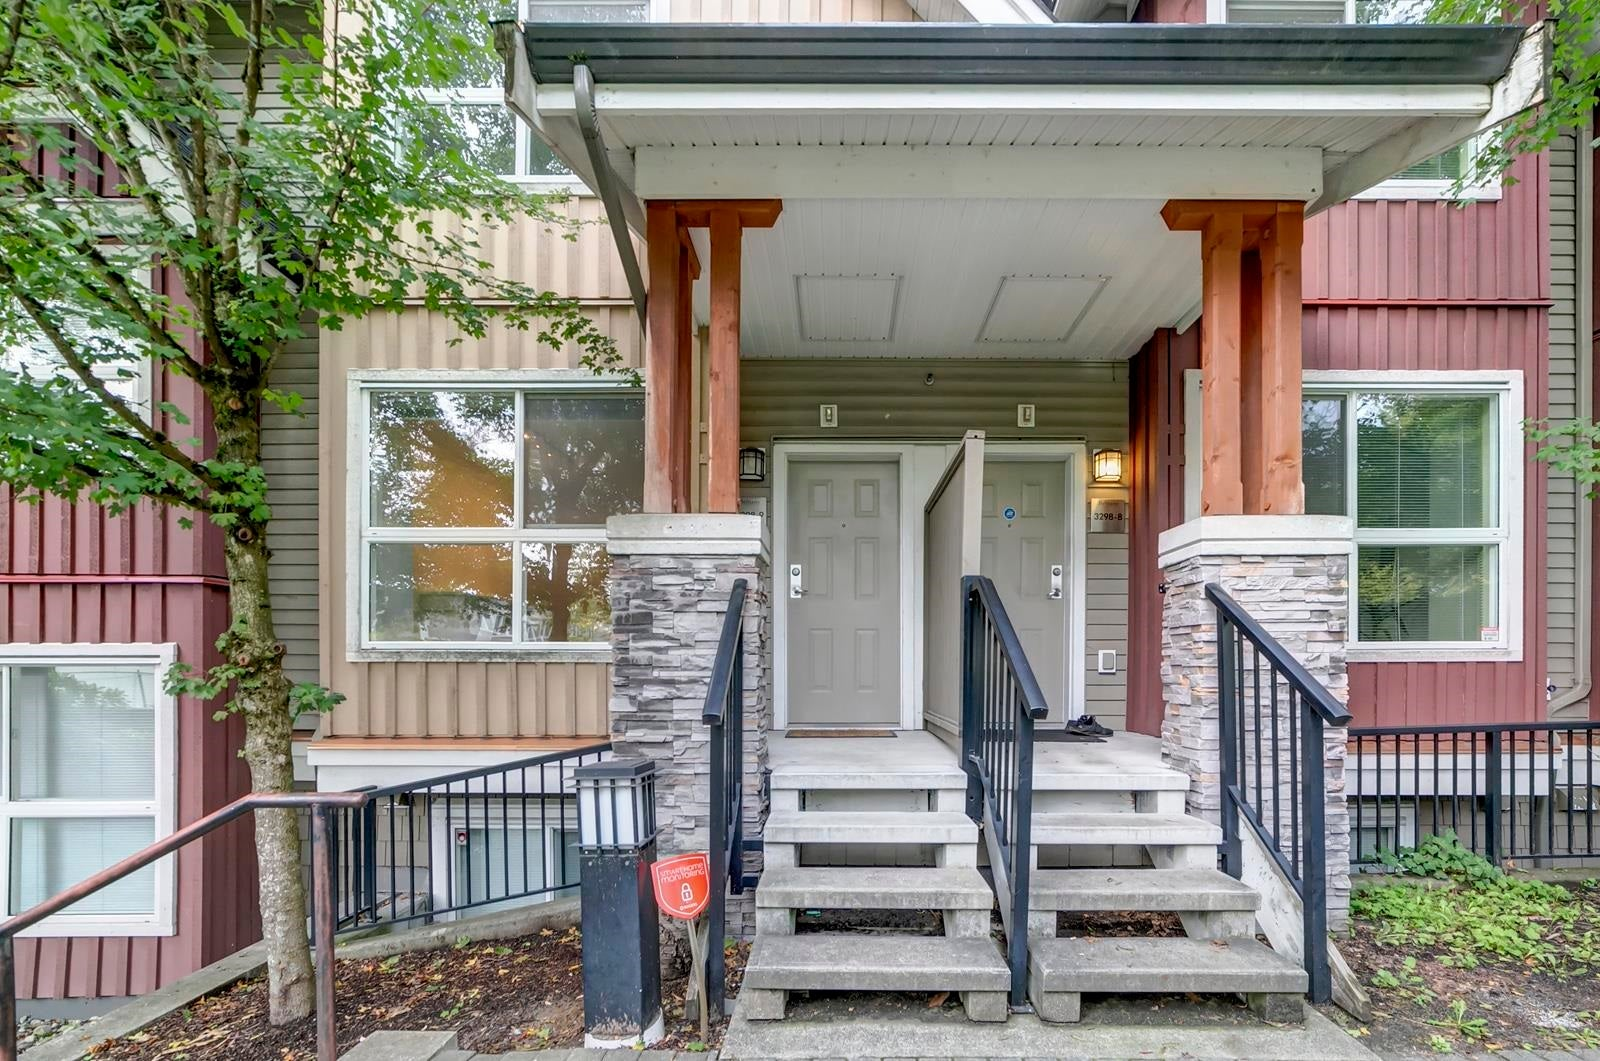 9 3298 E 54TH AVENUE - Champlain Heights Townhouse for sale, 2 Bedrooms (R2623527) - #1